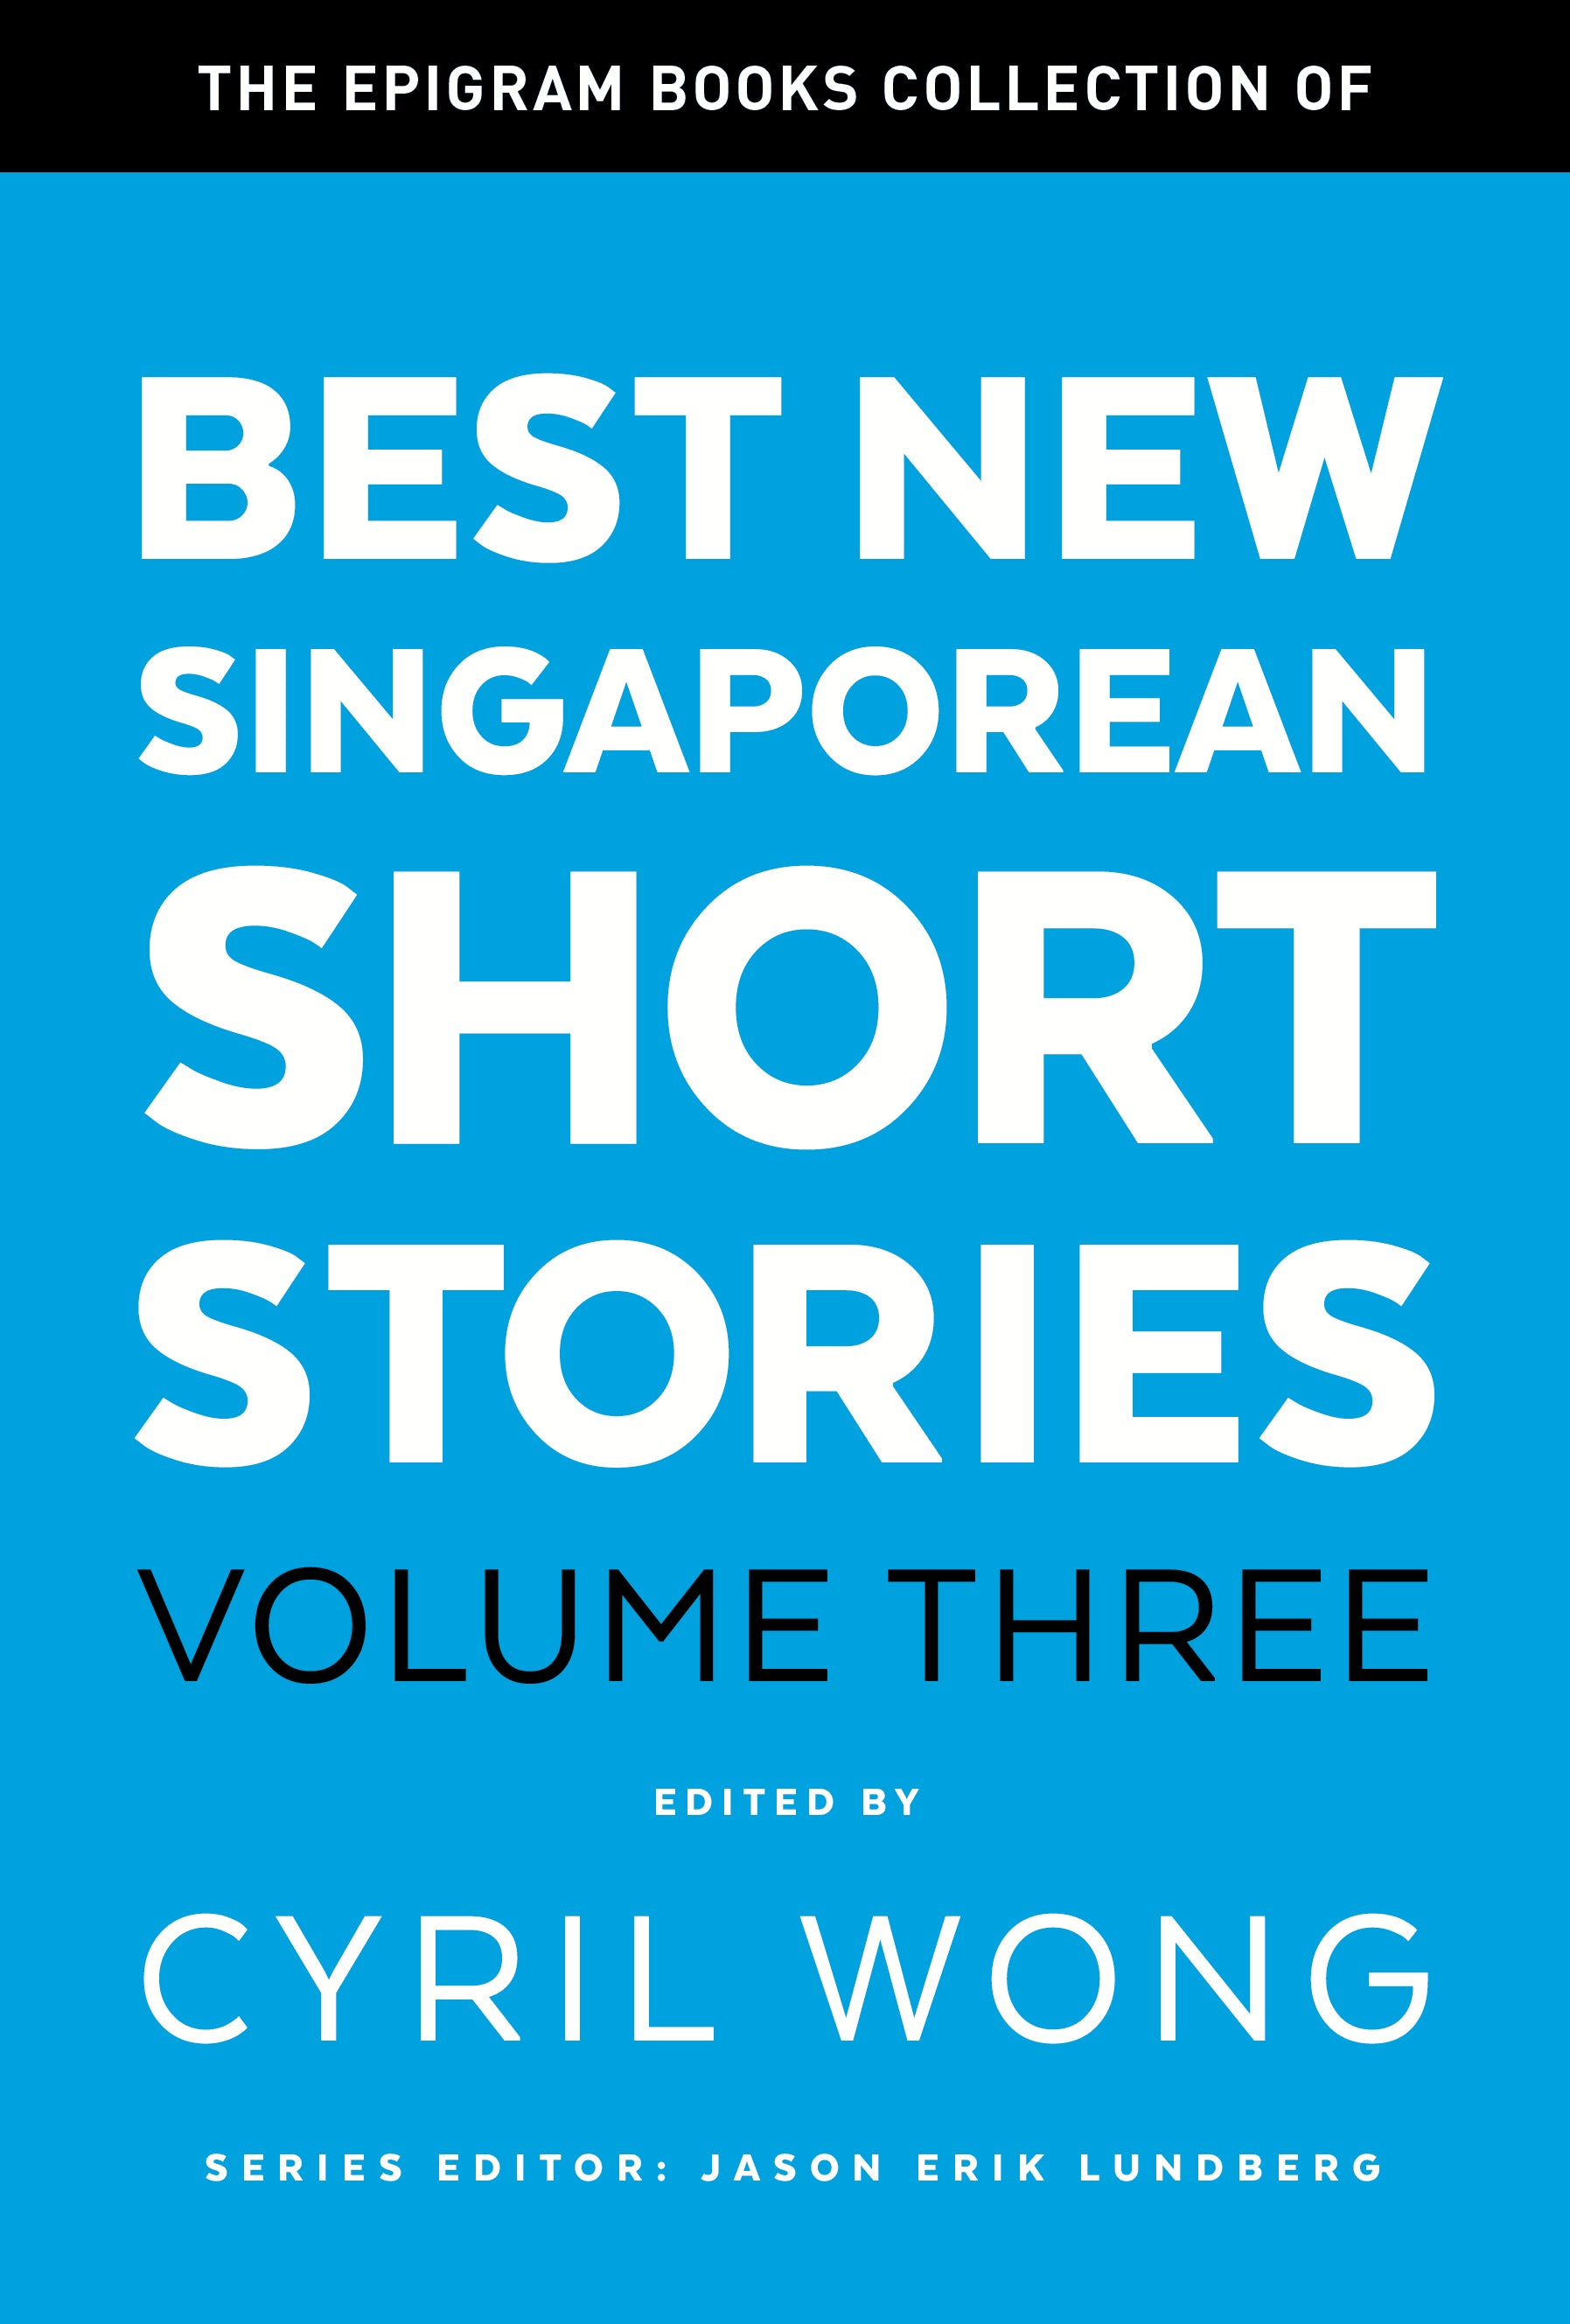 The Epigram Books Collection of Best New Singaporean Short Stories: Volume Three